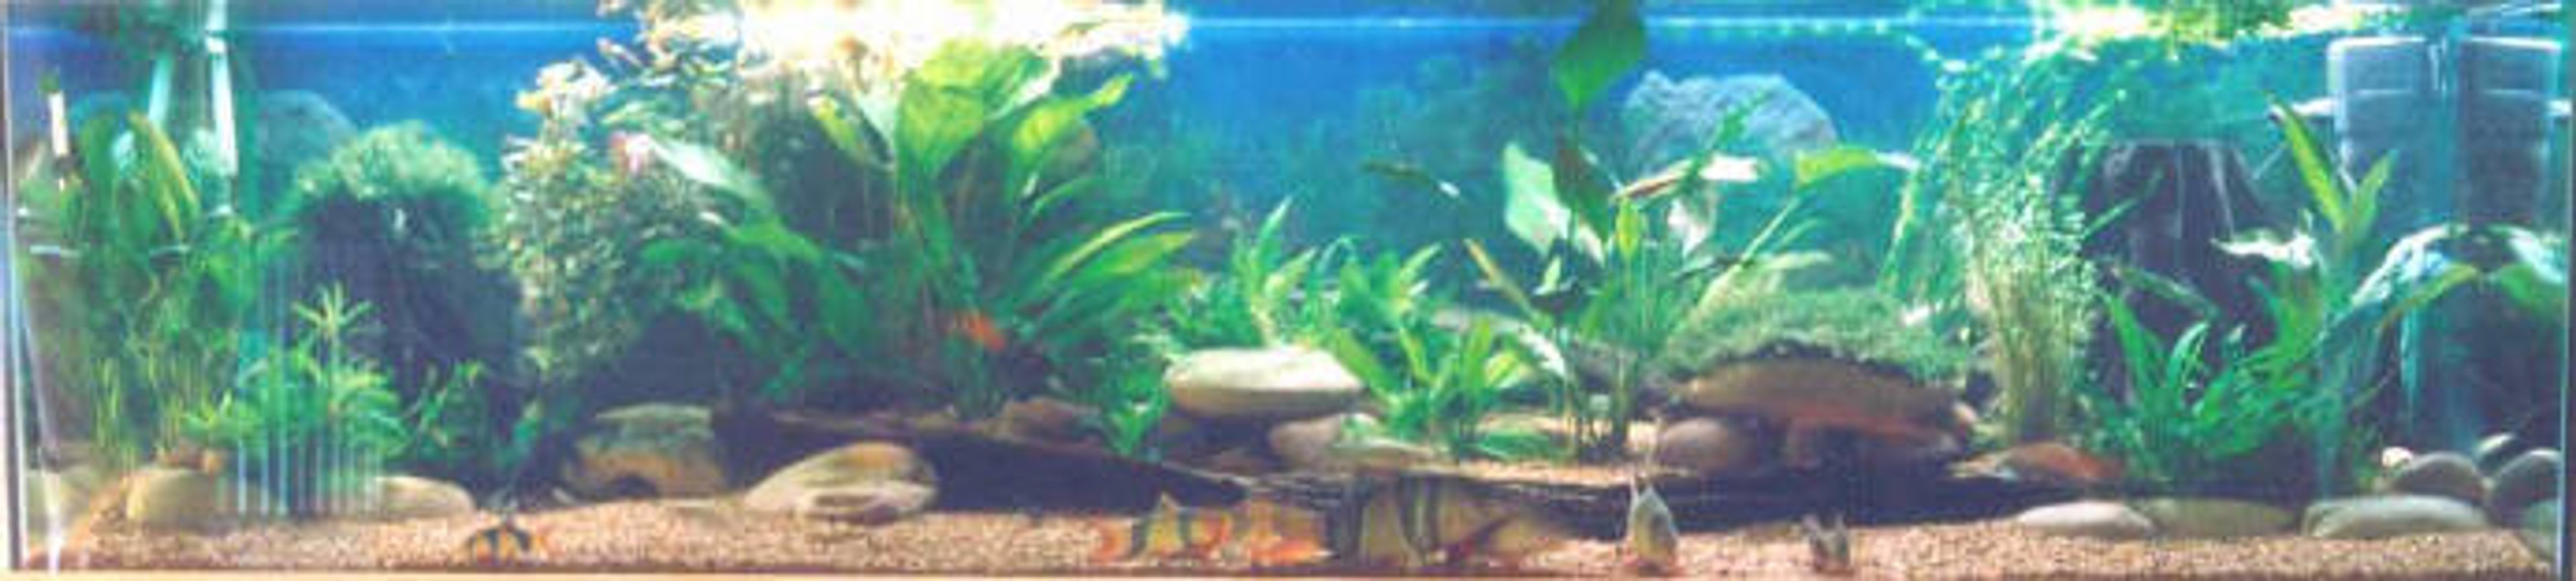 250 gallons freshwater fish tank (mostly fish and non-living decorations) - community tank